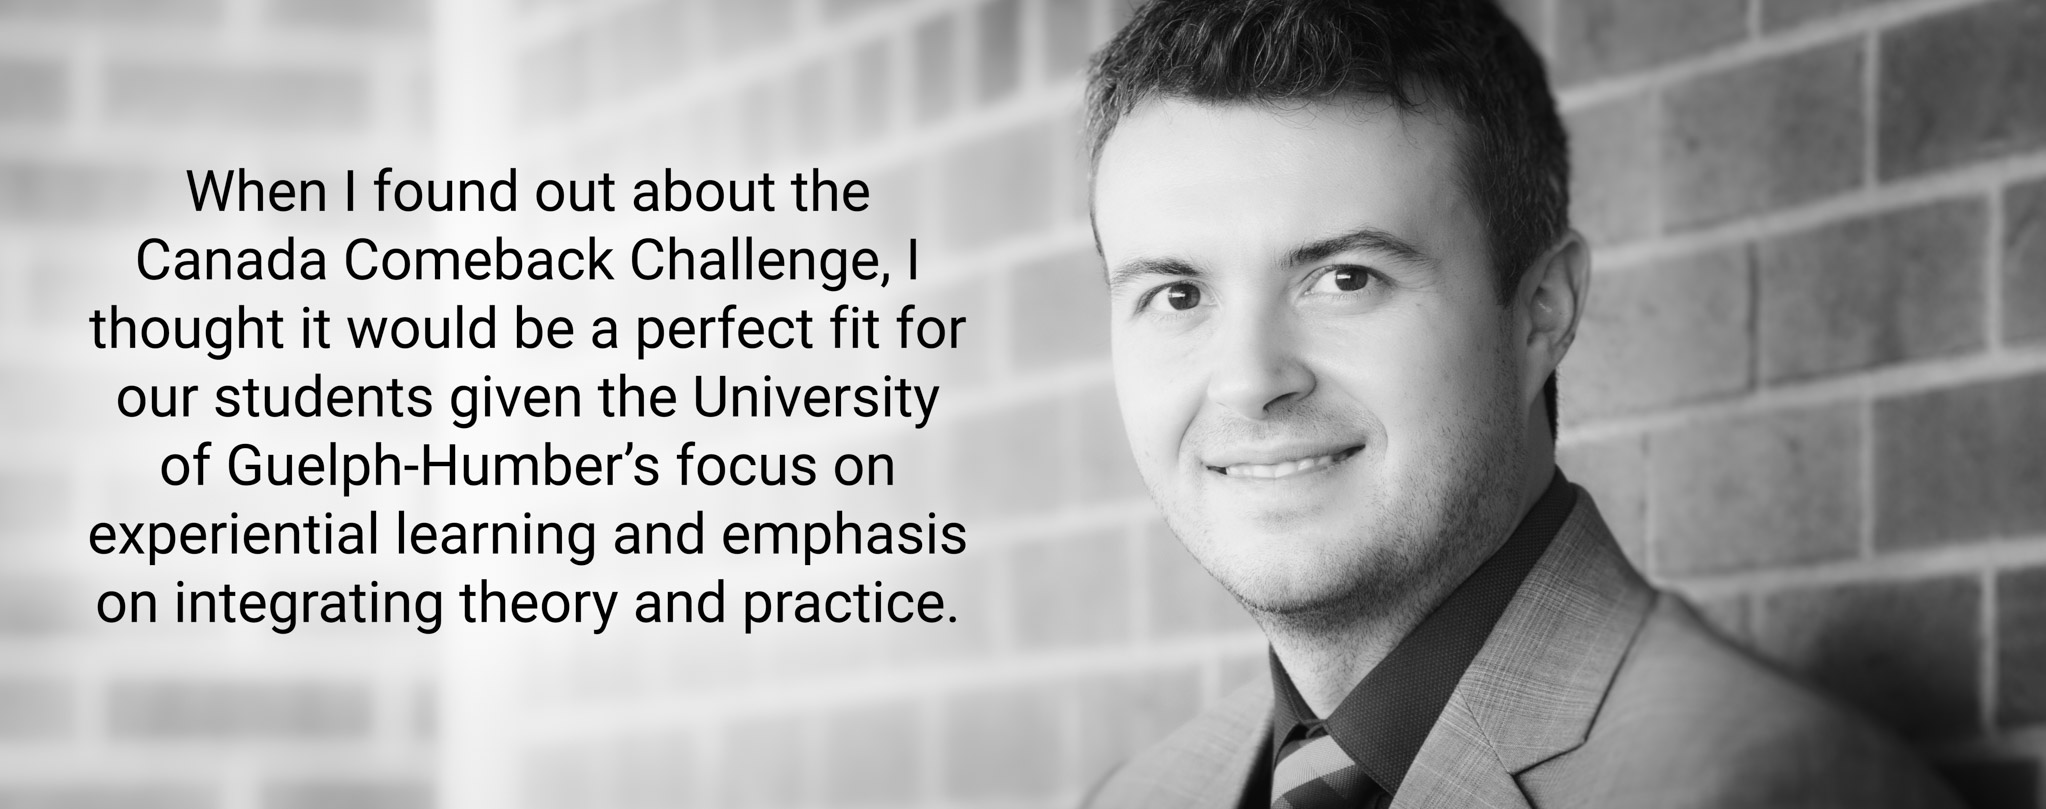 When I found out about the Canada Comeback Challenge, I thought it would be a perfect fit for our students given the University of Guelph-Humber's focus on experiential learning and emphasis on integrating theory and practice